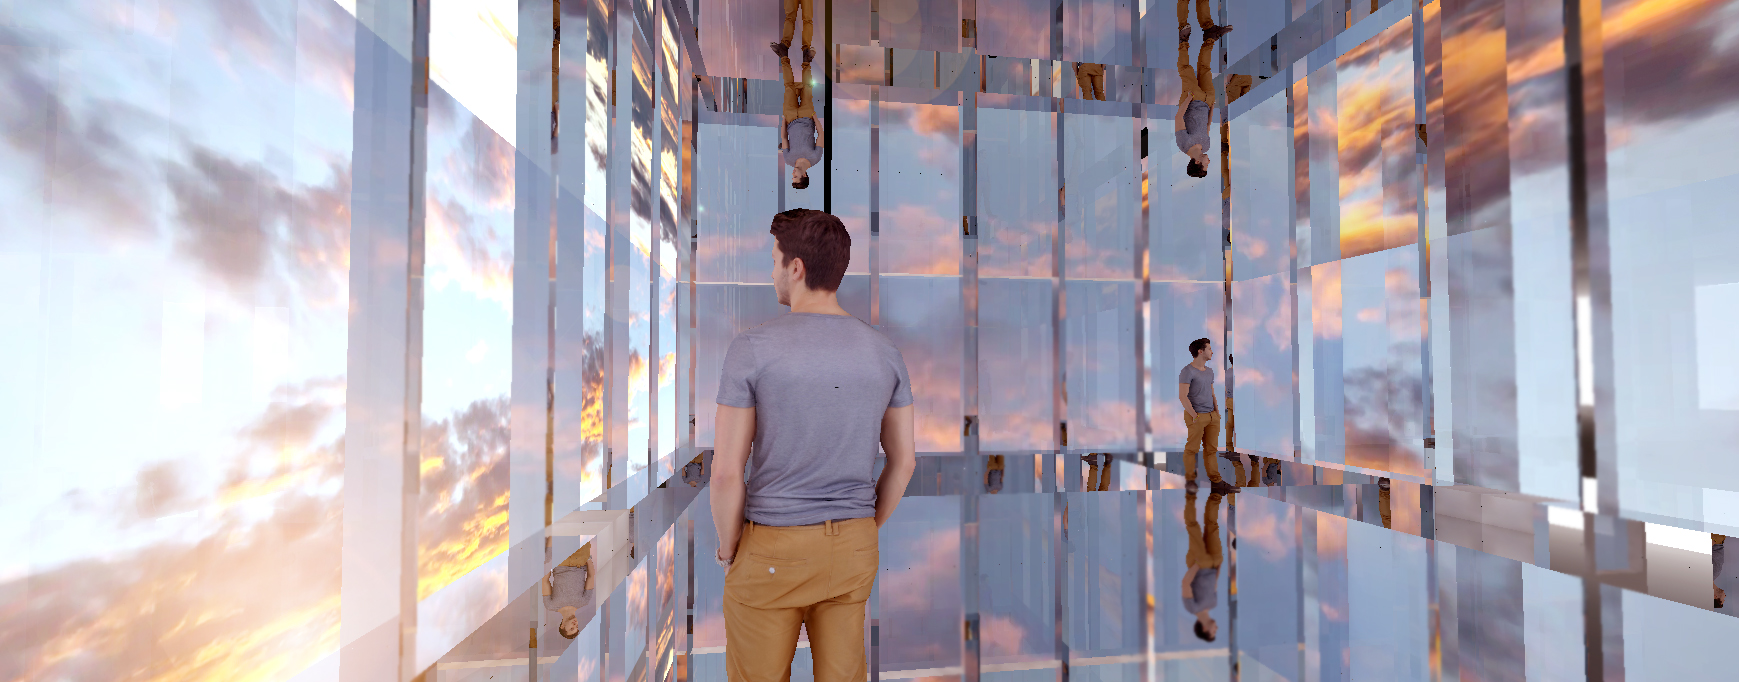 Conceptual rendering for Skyroom. A temporary installation at the 69th floor of the World Trade Center Tower 4 Gallery.